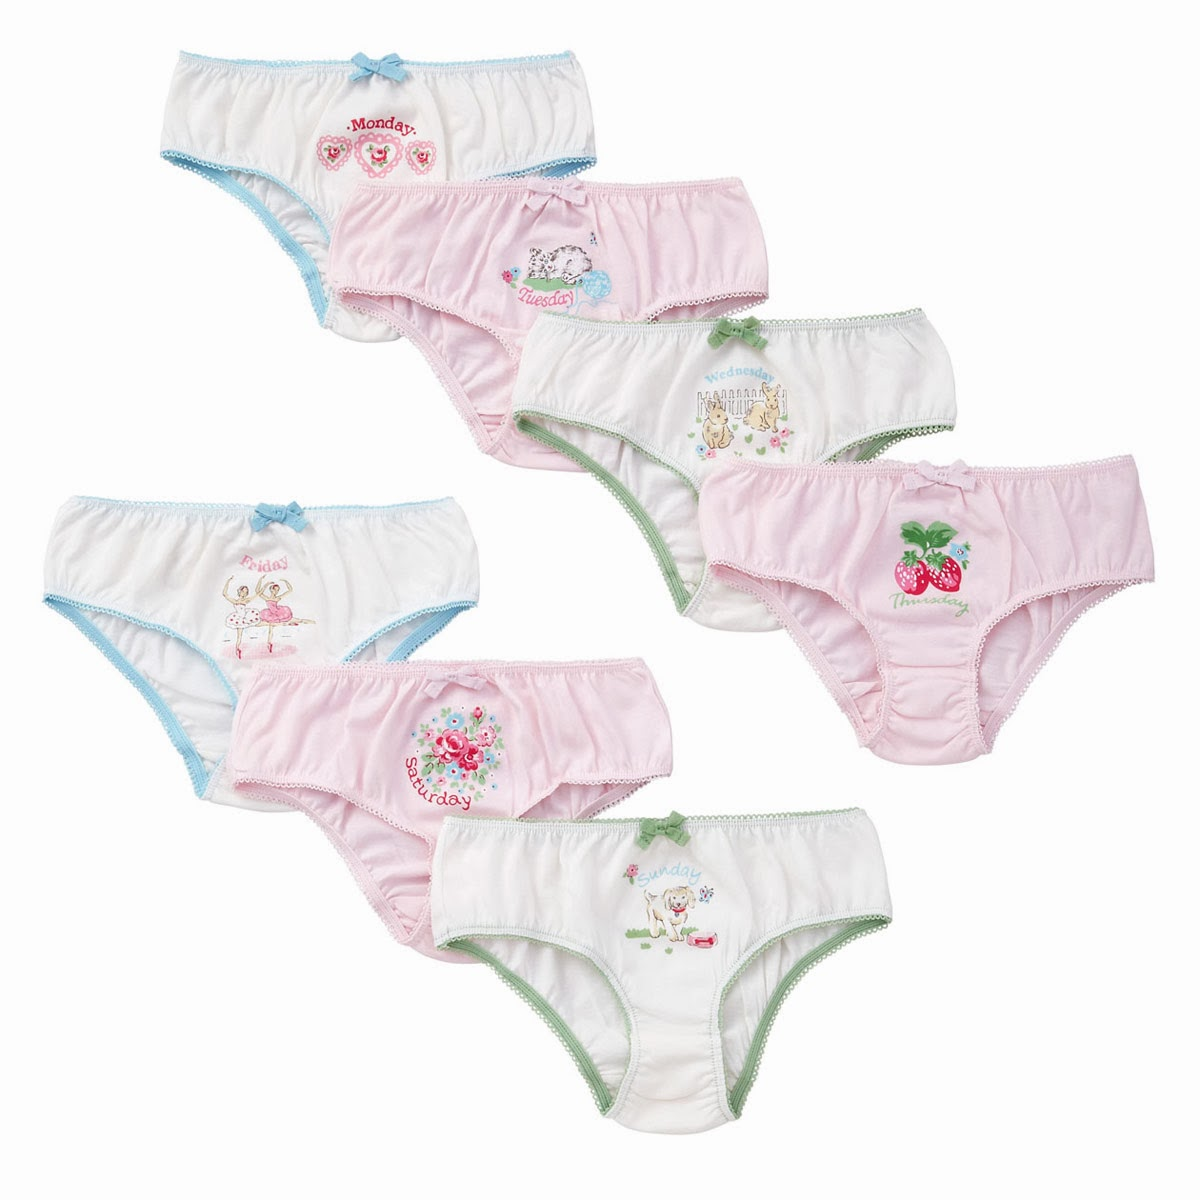 mamasVIB | V. I. BUYS: Retro Weekday Undies for BIG & LITTLE girls!, Cath Kidston weekday underwear | kids underwear | days of the week | christmas stocking filler ideas | mamasVIB | V.I.BABY